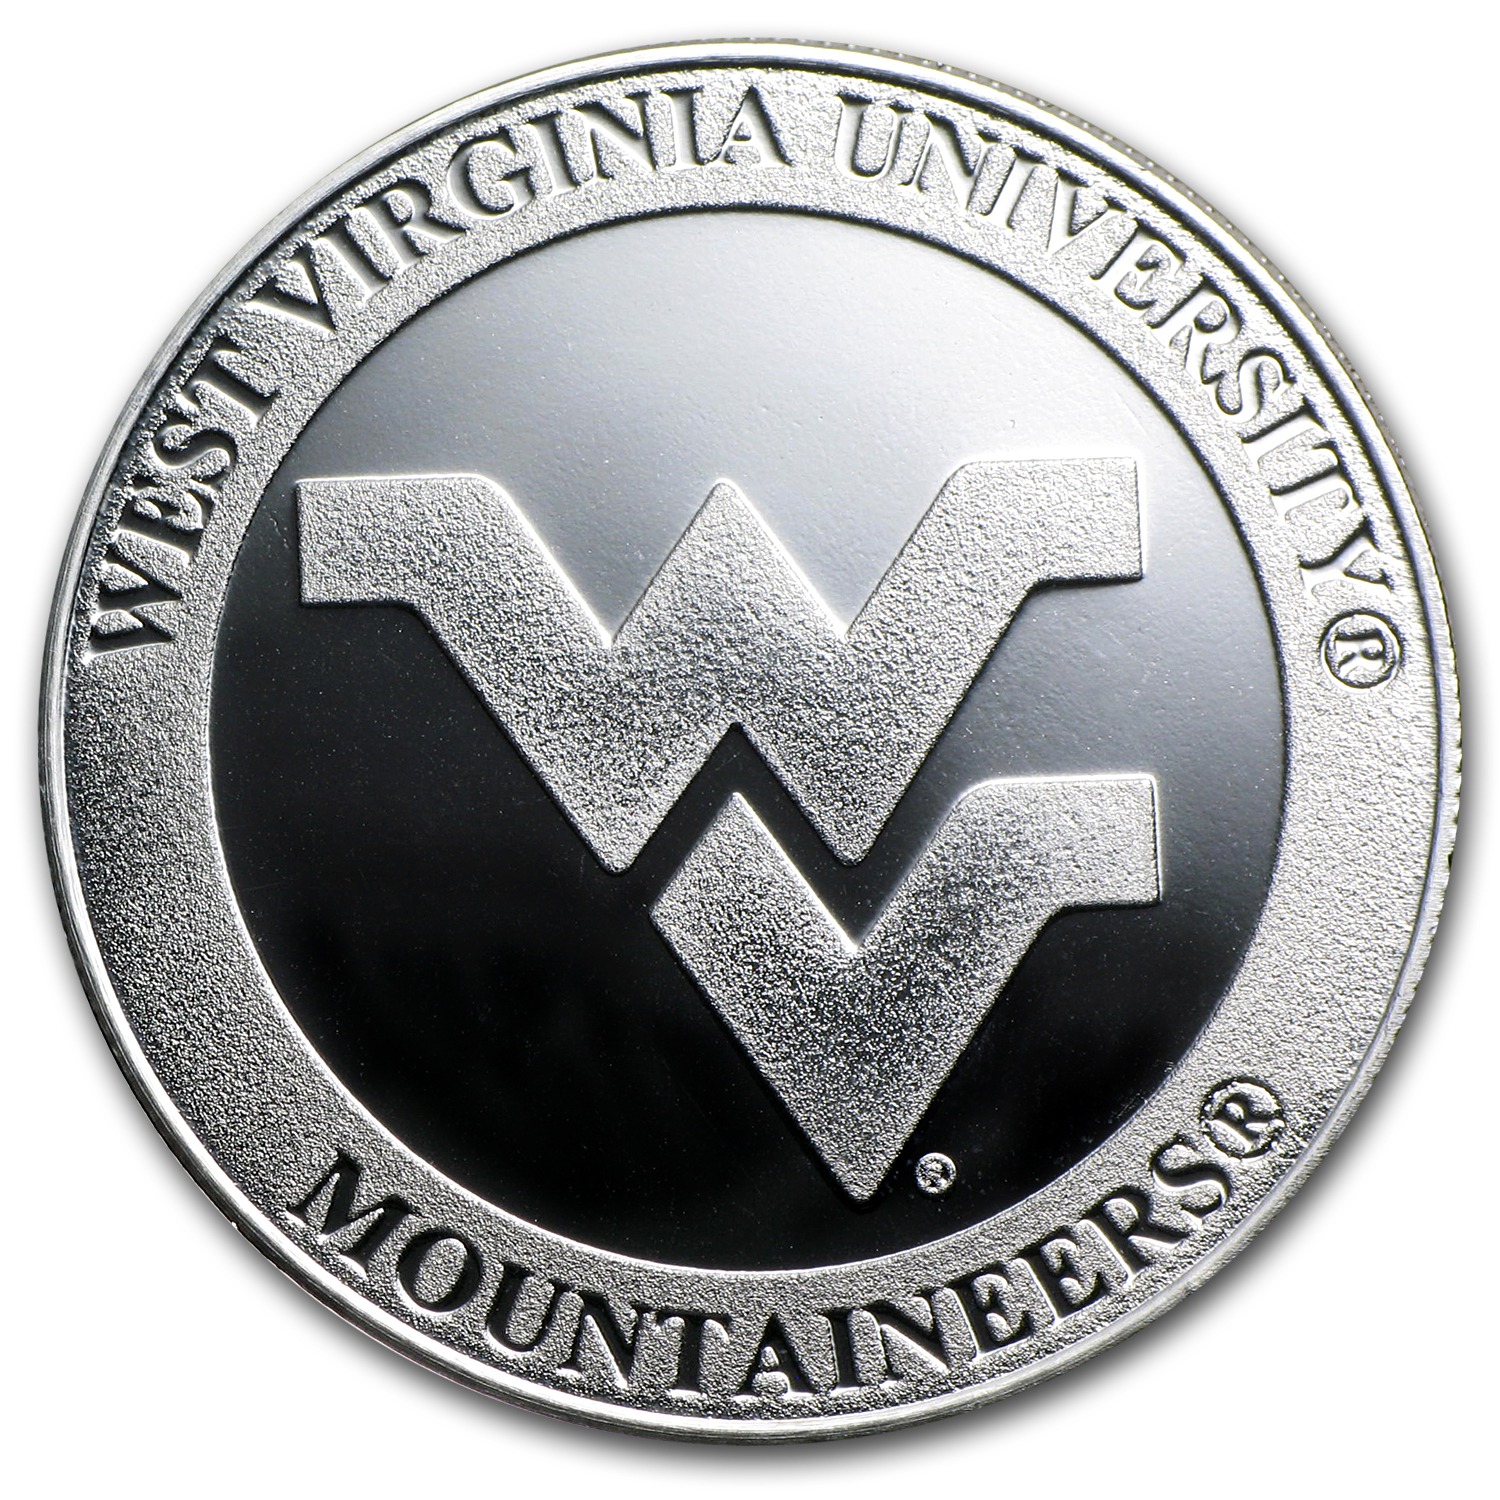 1 oz West Virginia University Silver Round